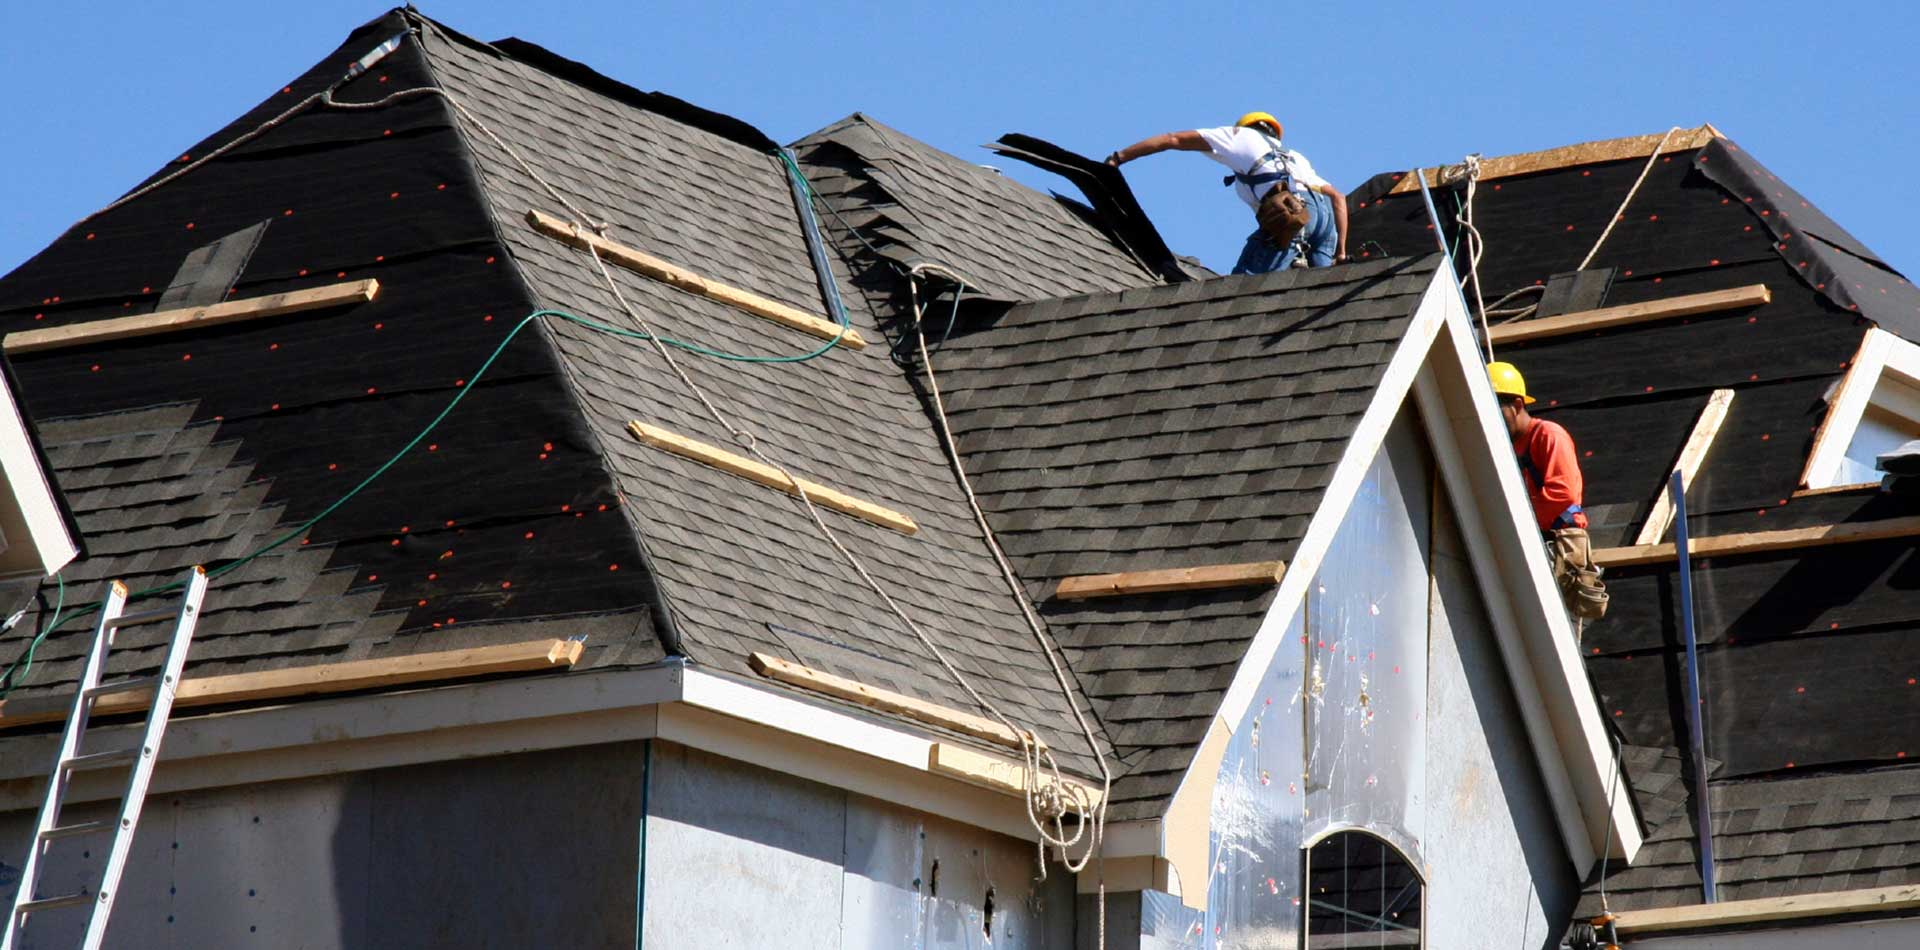 San Francisco bay area roofing Oakland roofing contractor : oakland roofing - memphite.com